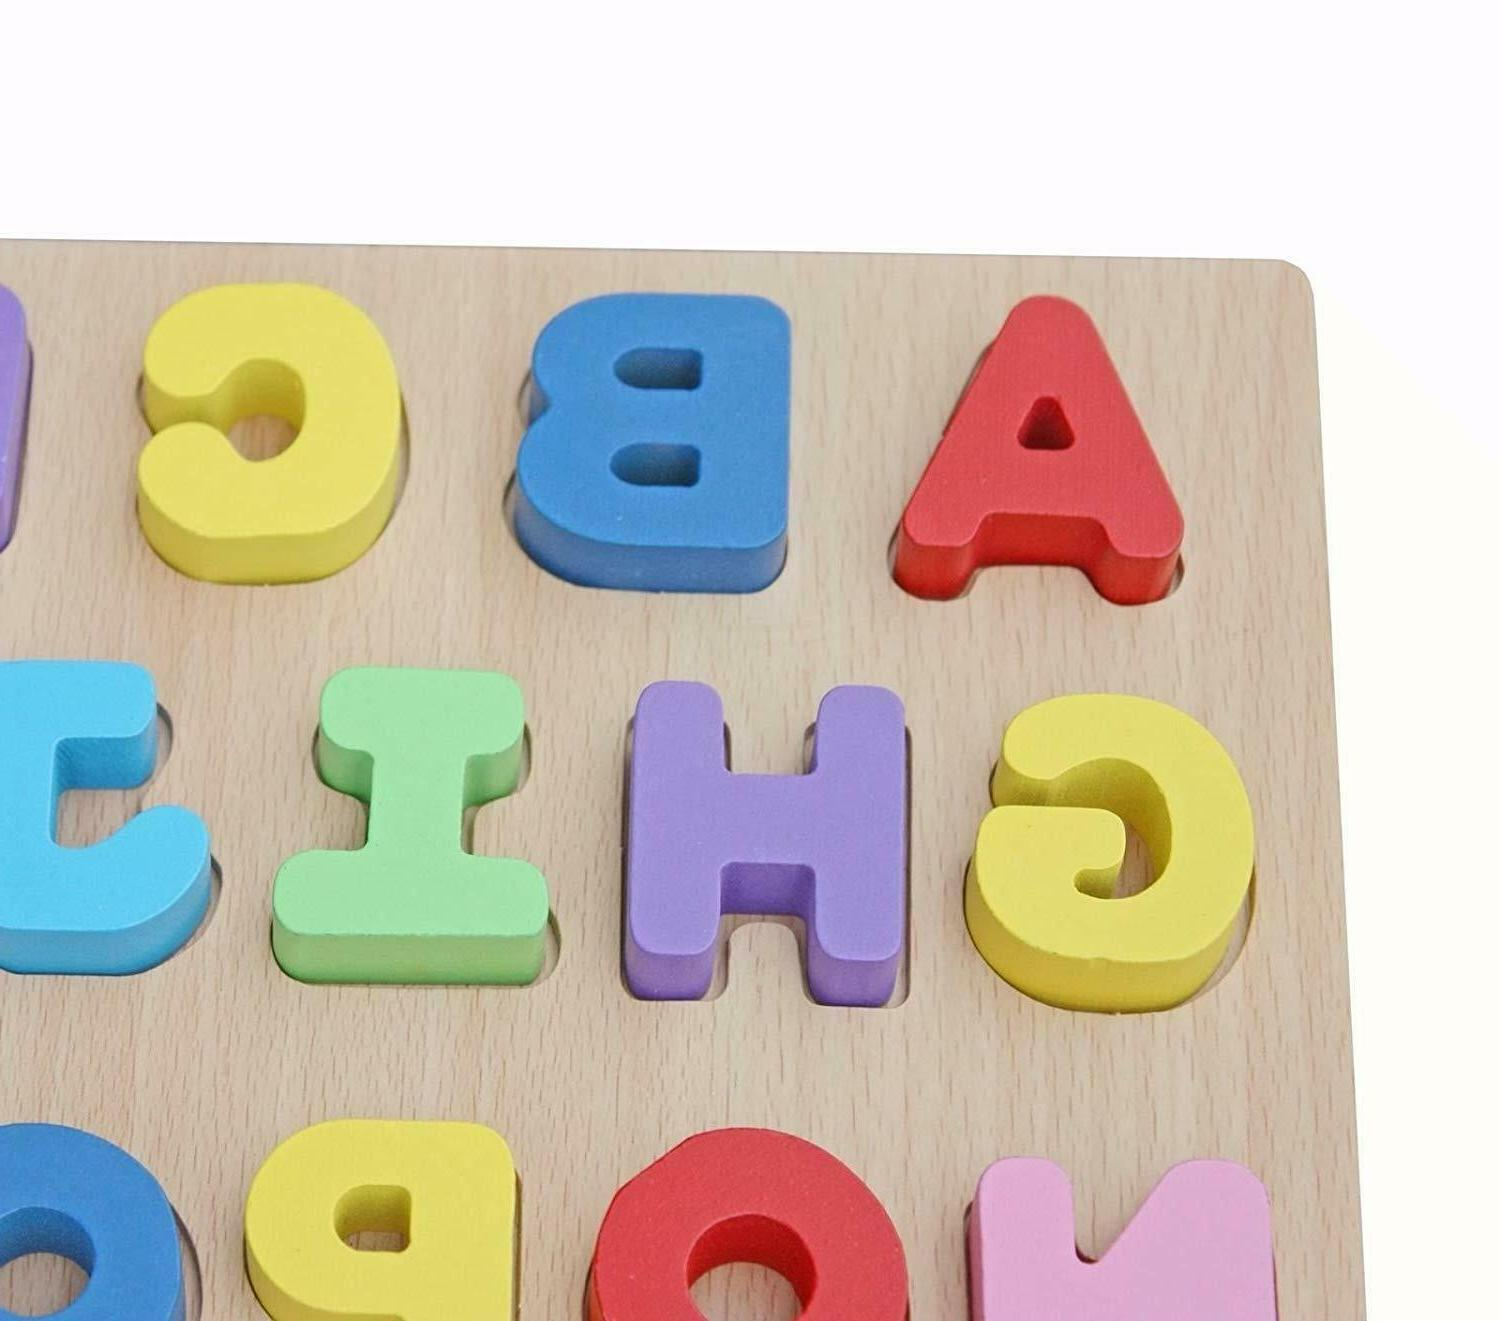 Timy Board for Toddlers Early